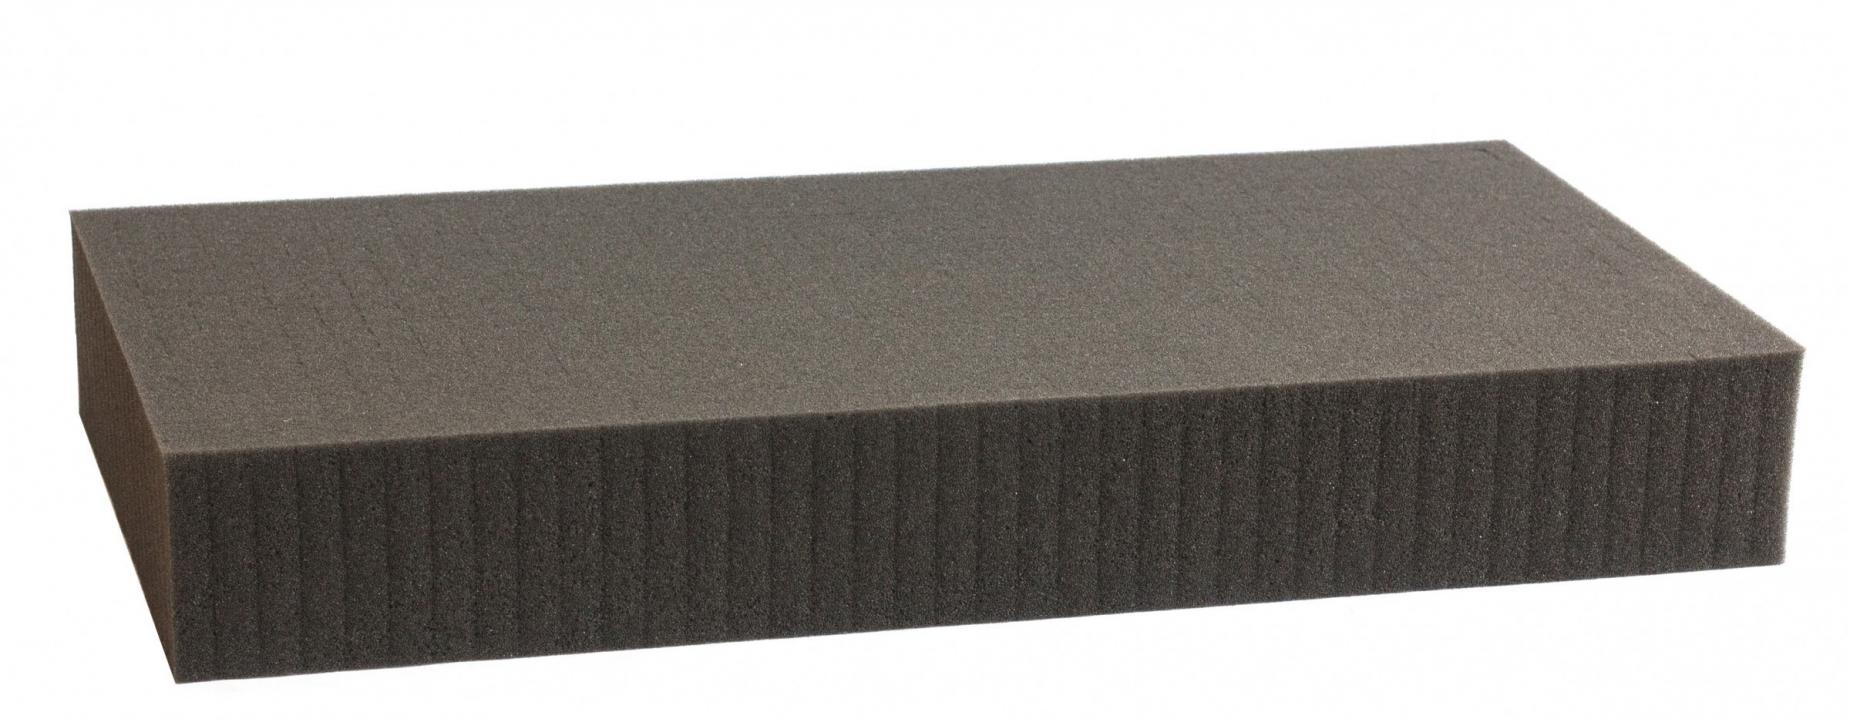 500 mm x 400 mm x 70 mm - Raster 15 mm - Pick and Pluck / Pre-Cubed foam tray